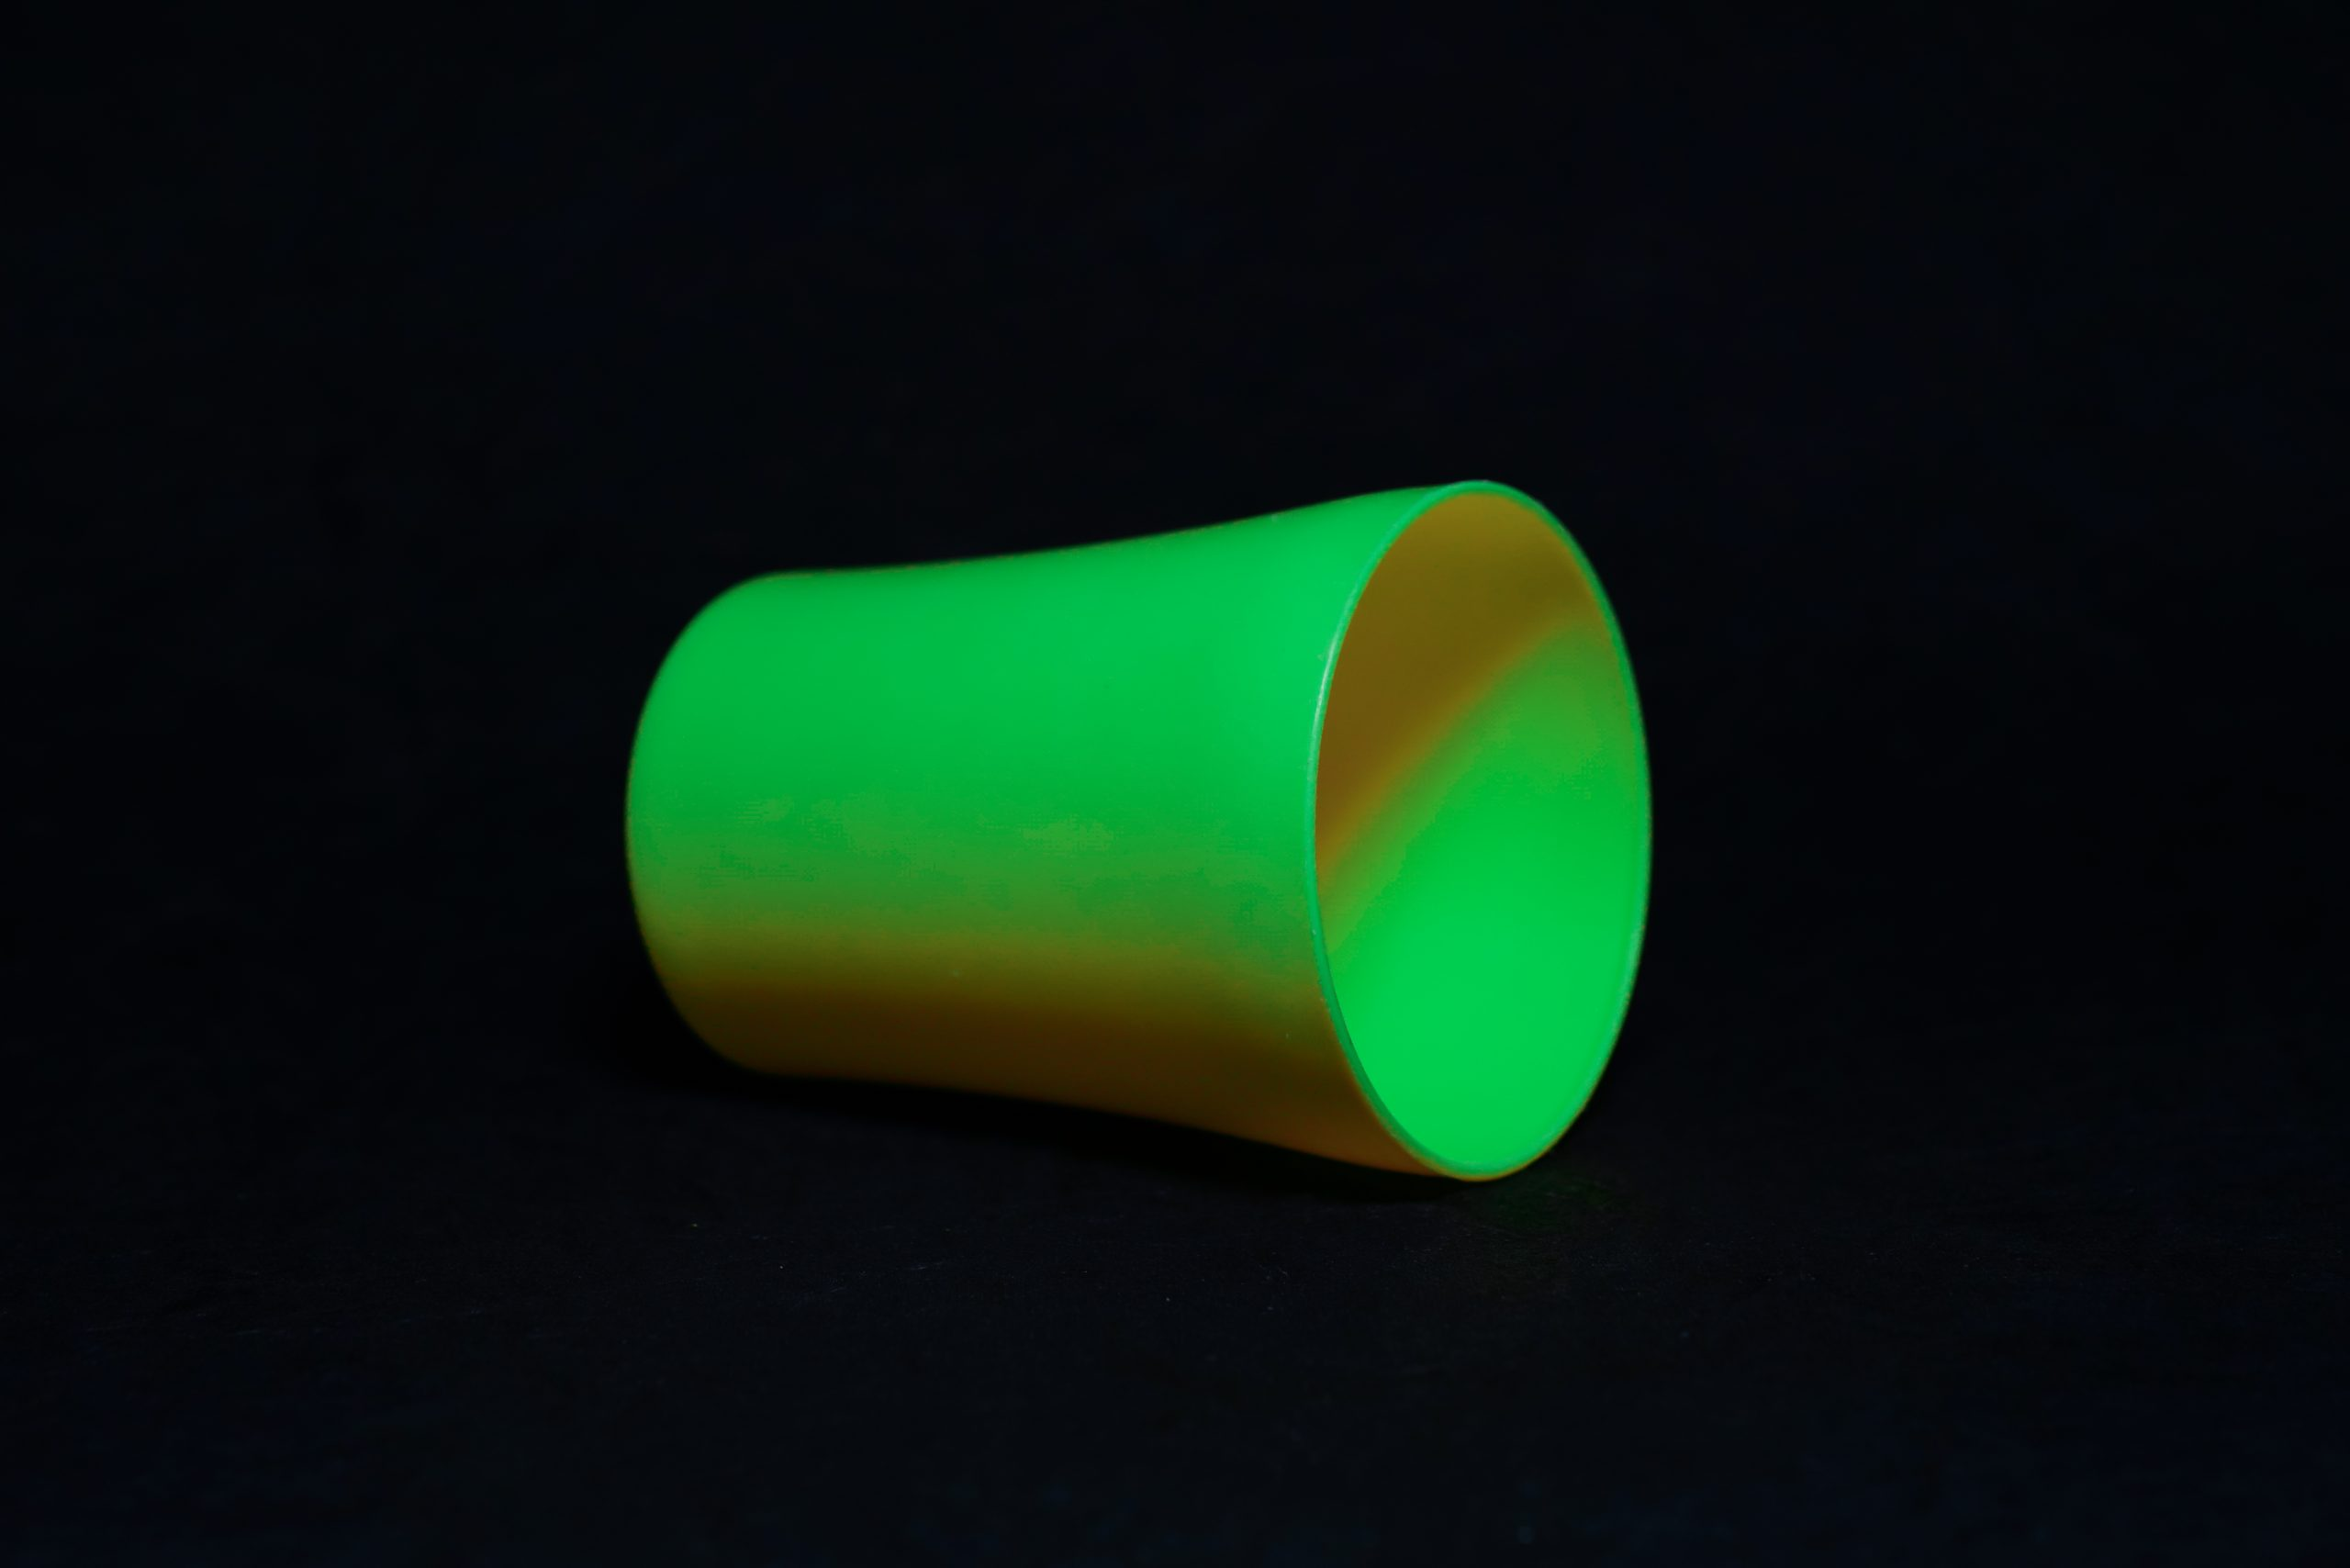 A green tumbler with black background